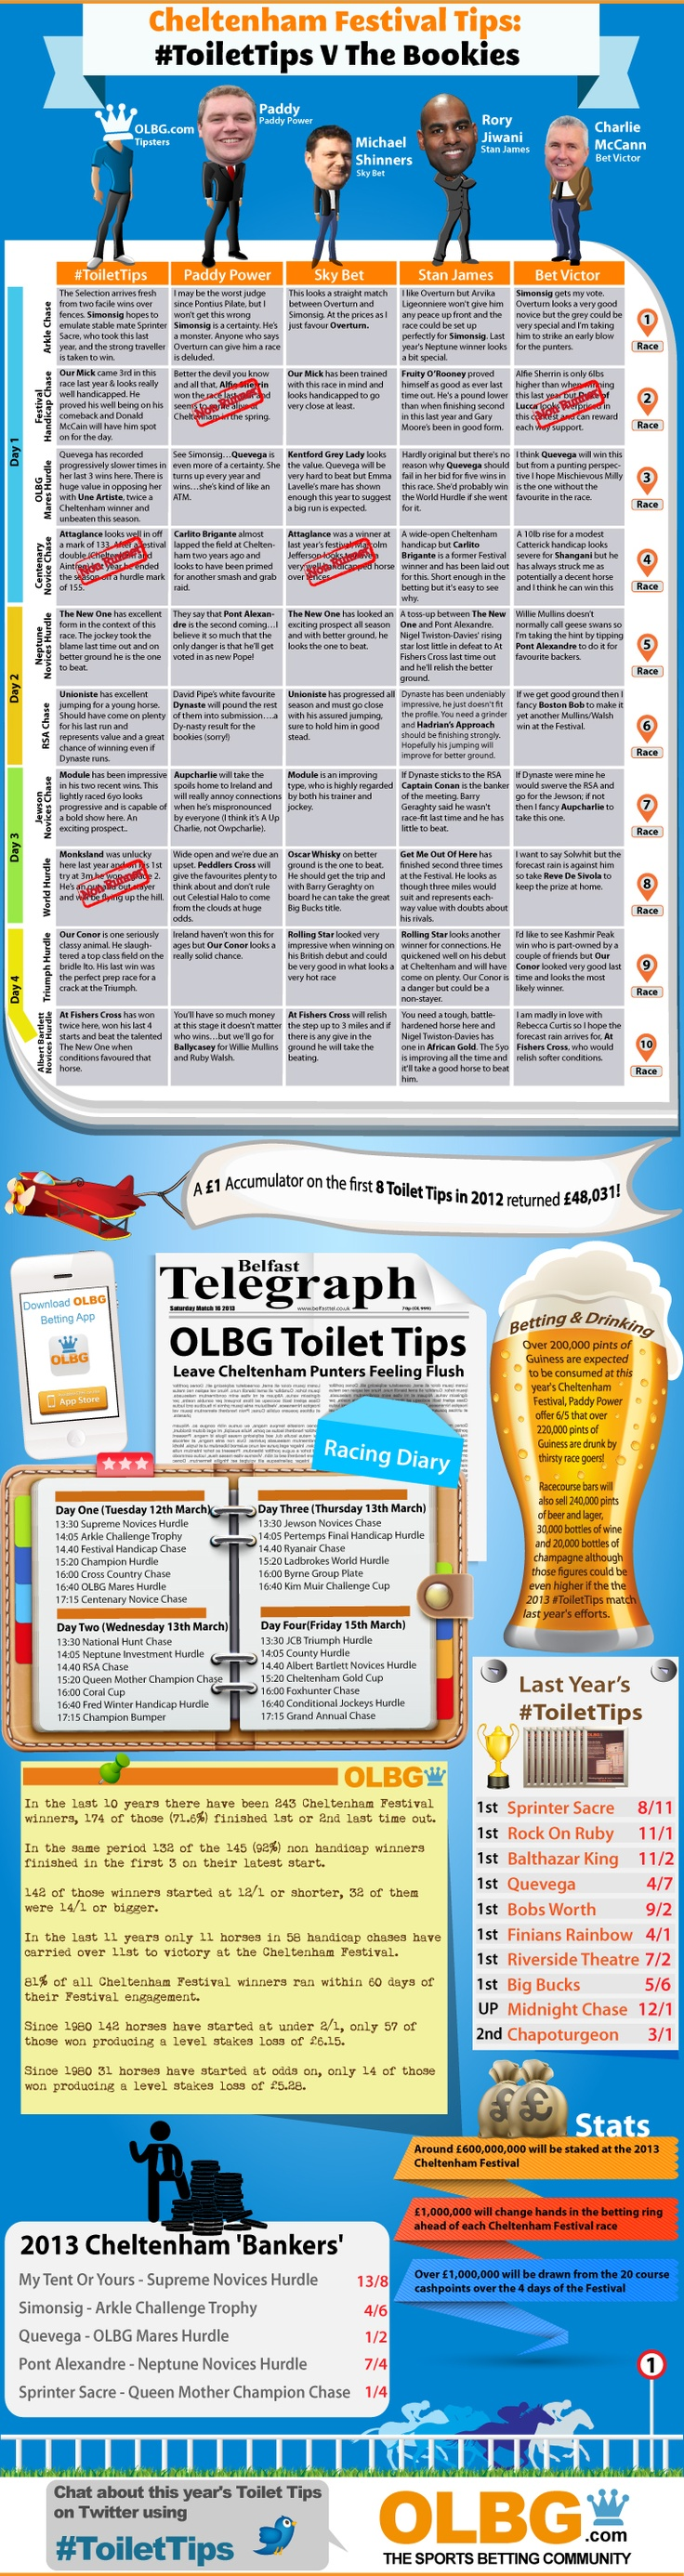 At the 2012 Cheltenham Festival the sponsors of the OLBG Mares' Hurdle, OLBG.com, added 10 Cheltenham Festival Tips from OLBG members to the mens' toilets at Cheltenham racecourse. The first 8 of those 'Toilet Tips' won at combined odds of 48,030/1. The Toilet Tips are back for the Cheltenham Festival 2013 and this time they are going head to head with the bookies to see who comes out on top.